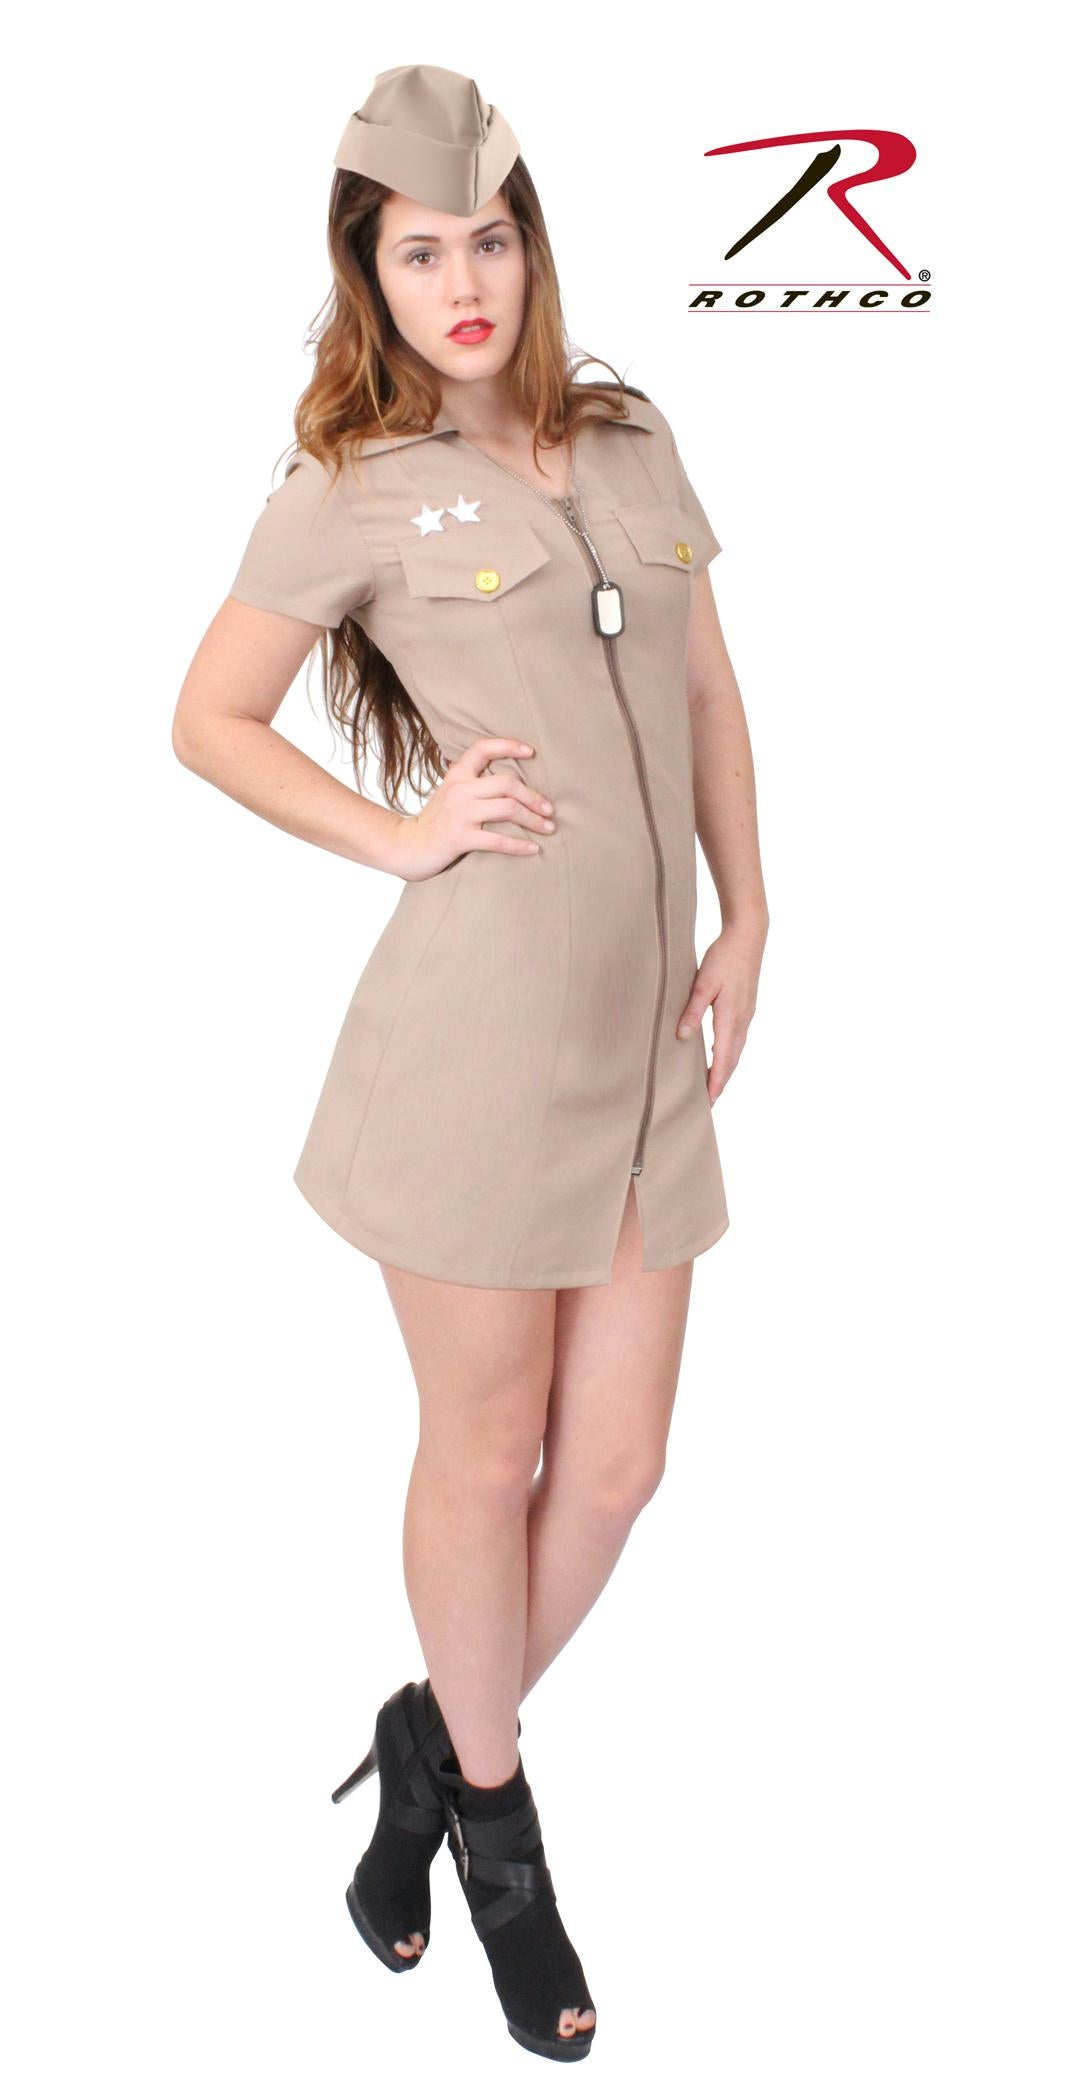 Rothco Women's Khaki Military Costume - S